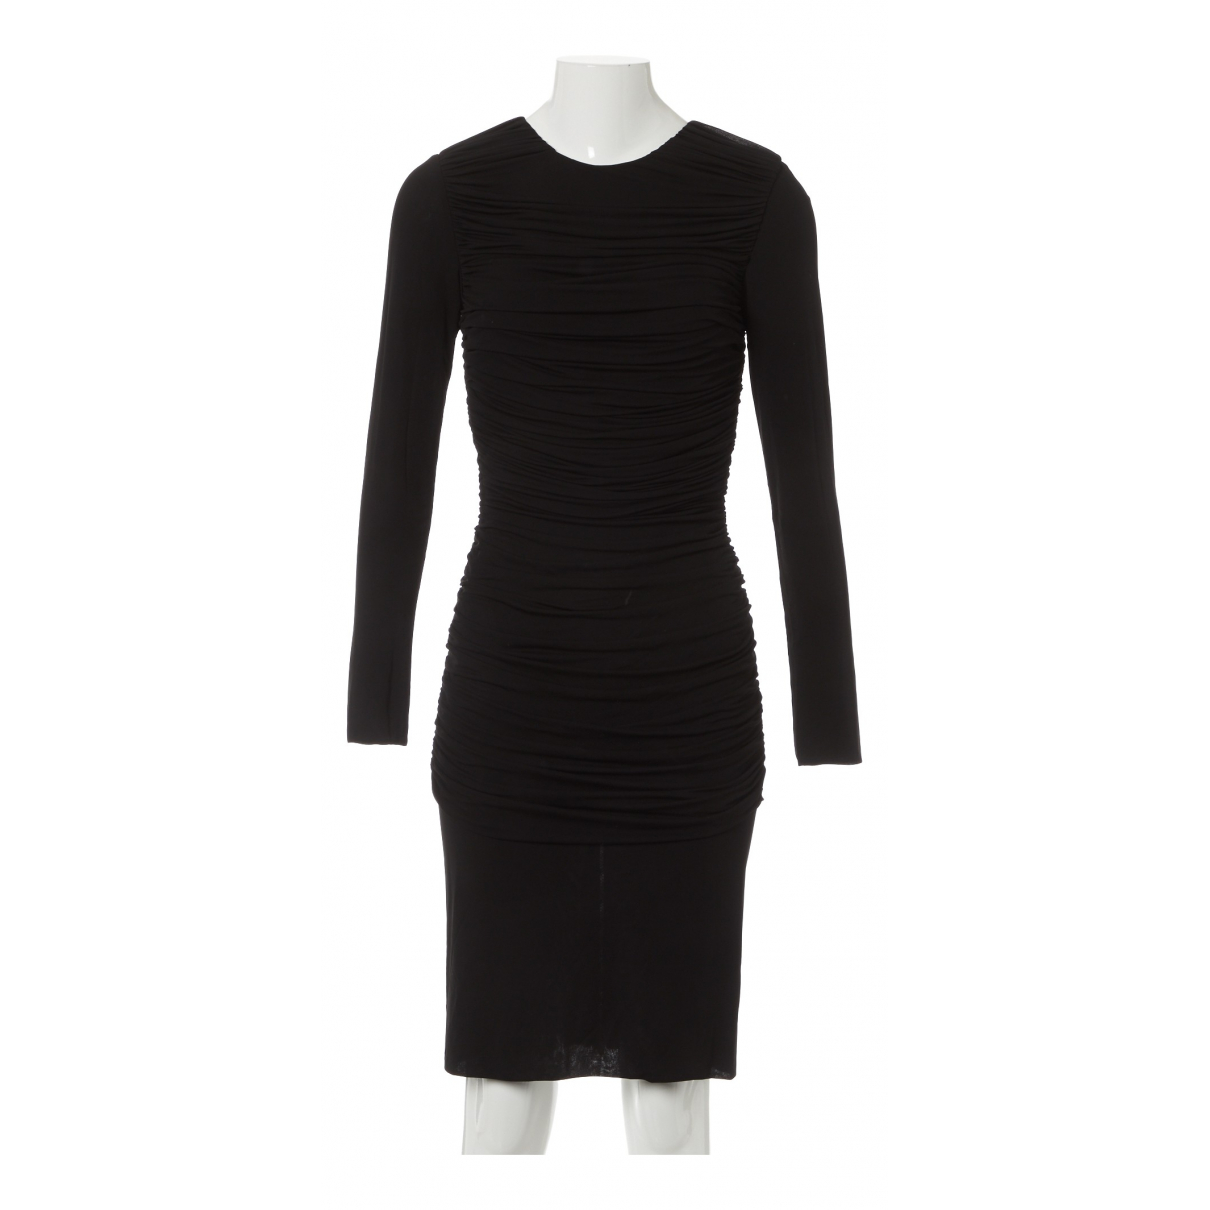 Tom Ford \N Black dress for Women 38 IT